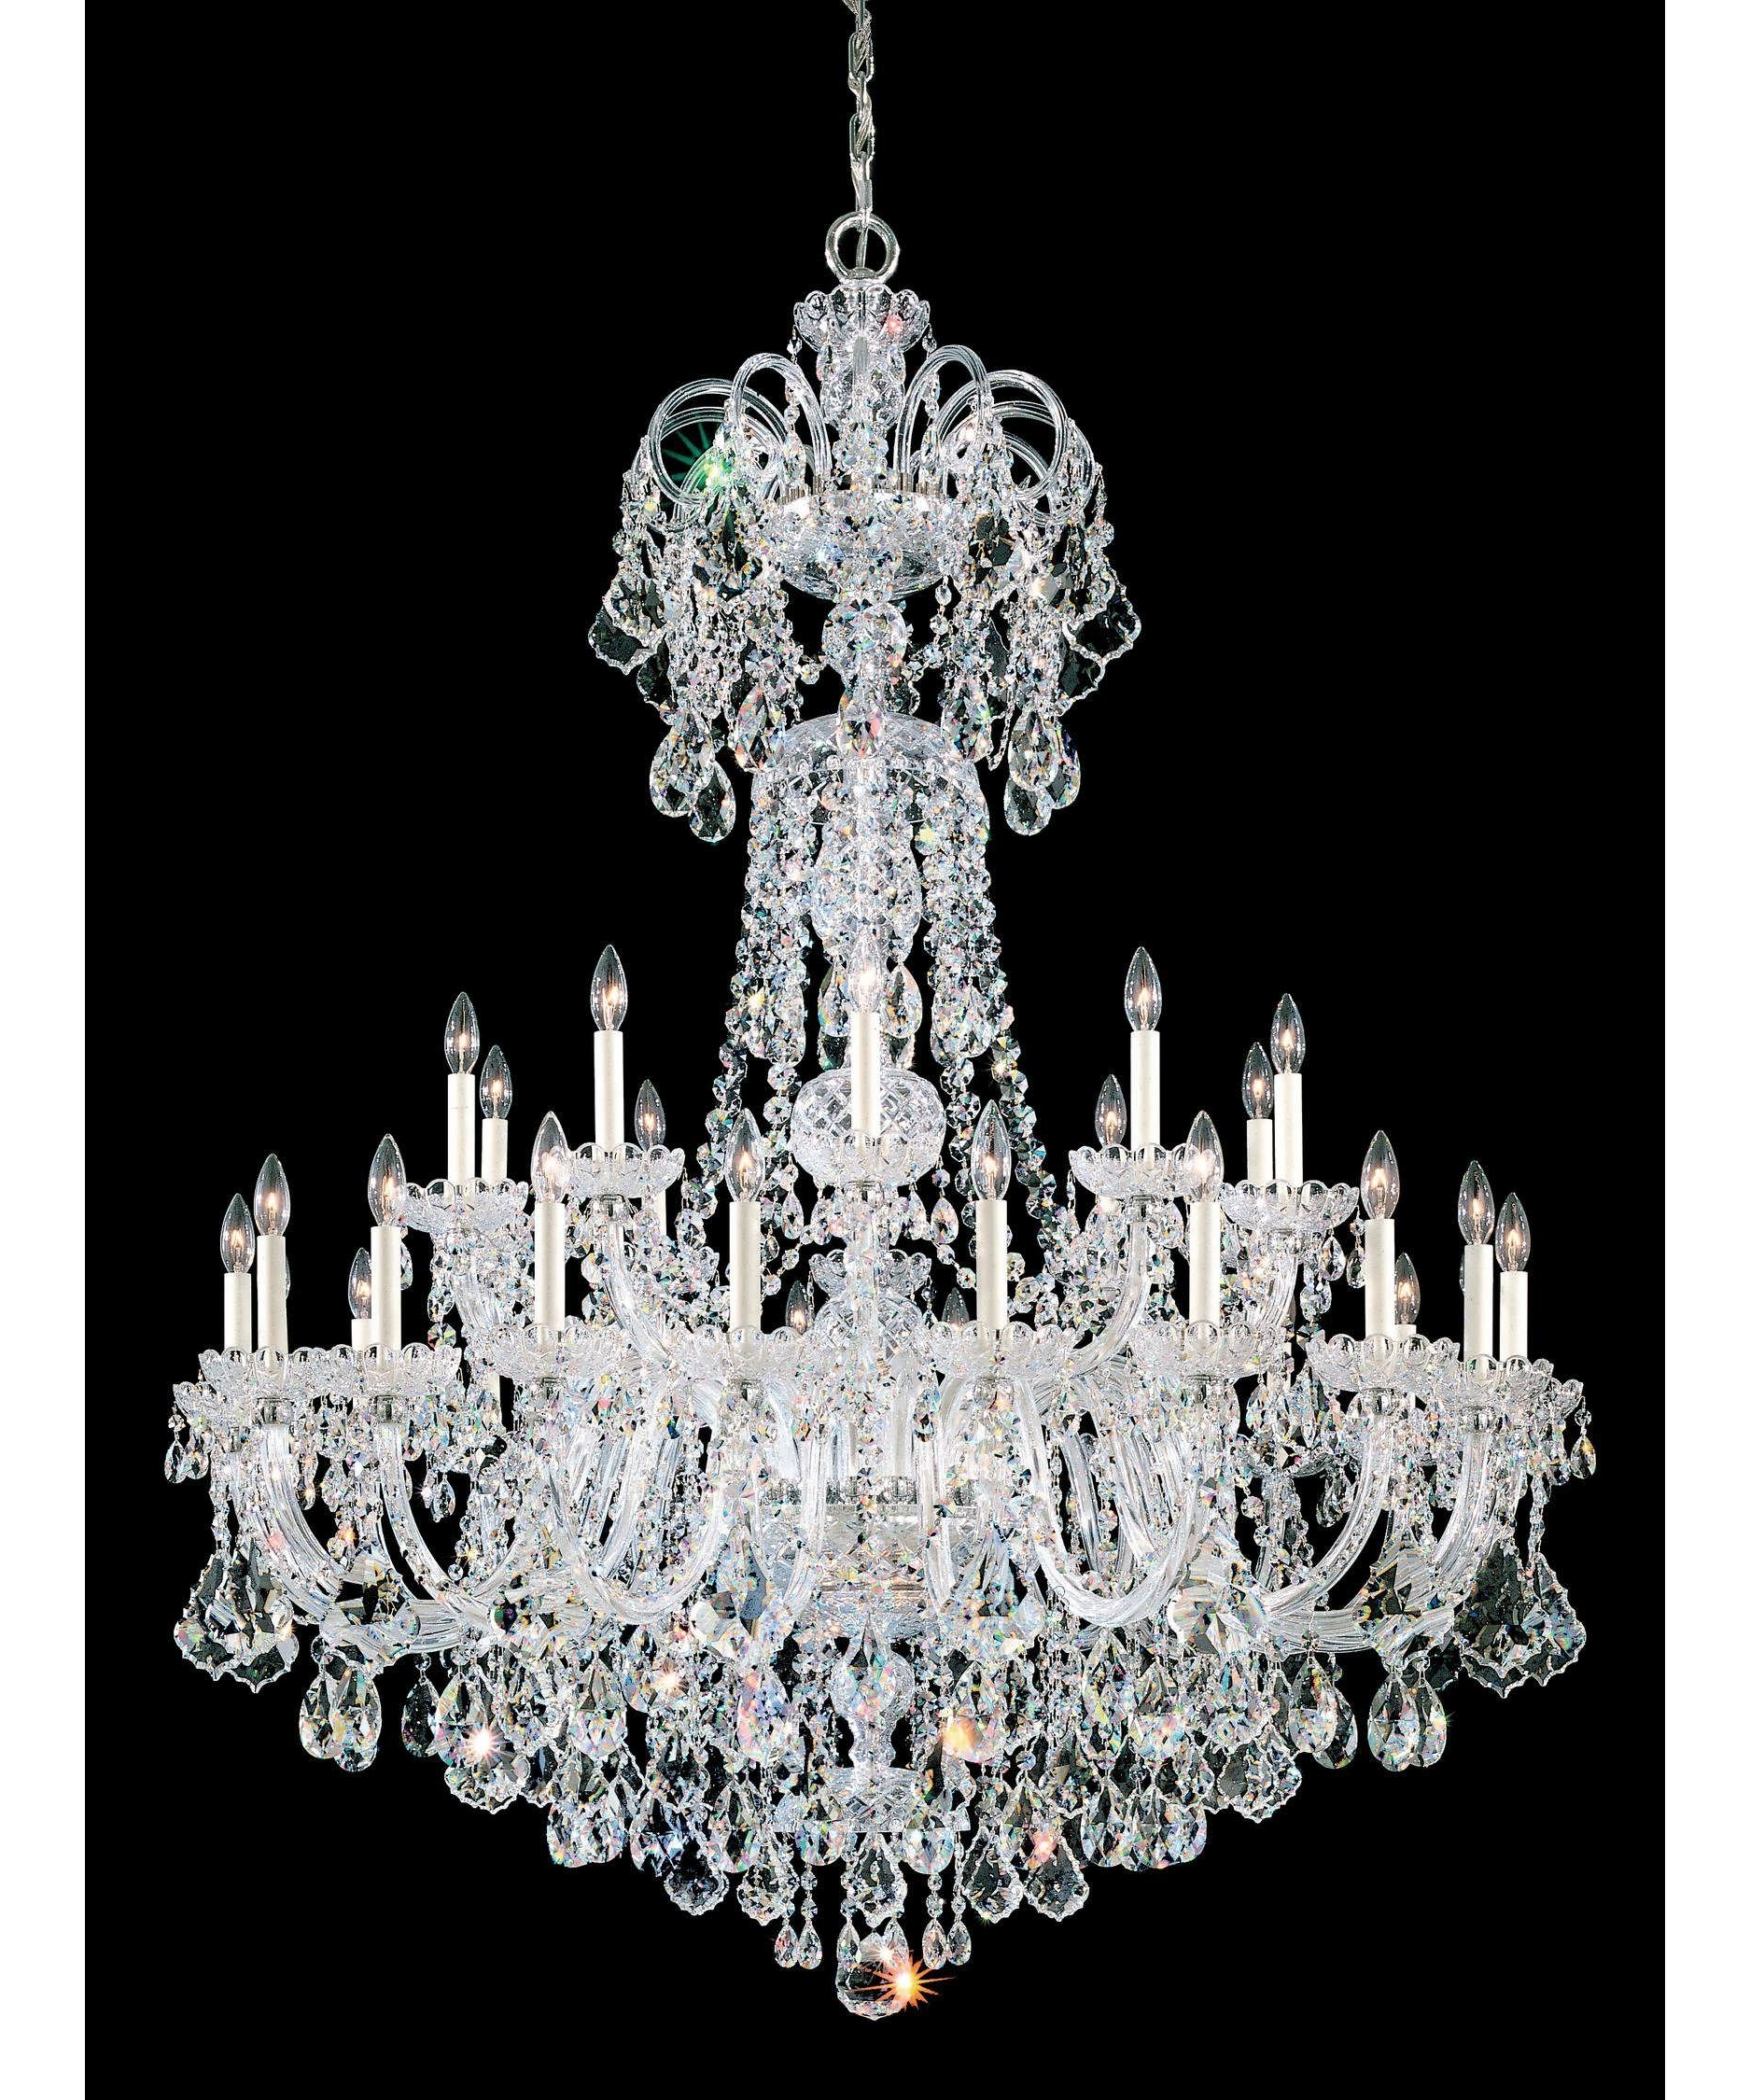 Acrylic Chandeliers Pertaining To Most Up To Date Chandelier : Beach Chandelier Murano Glass Chandelier Italian (View 5 of 20)